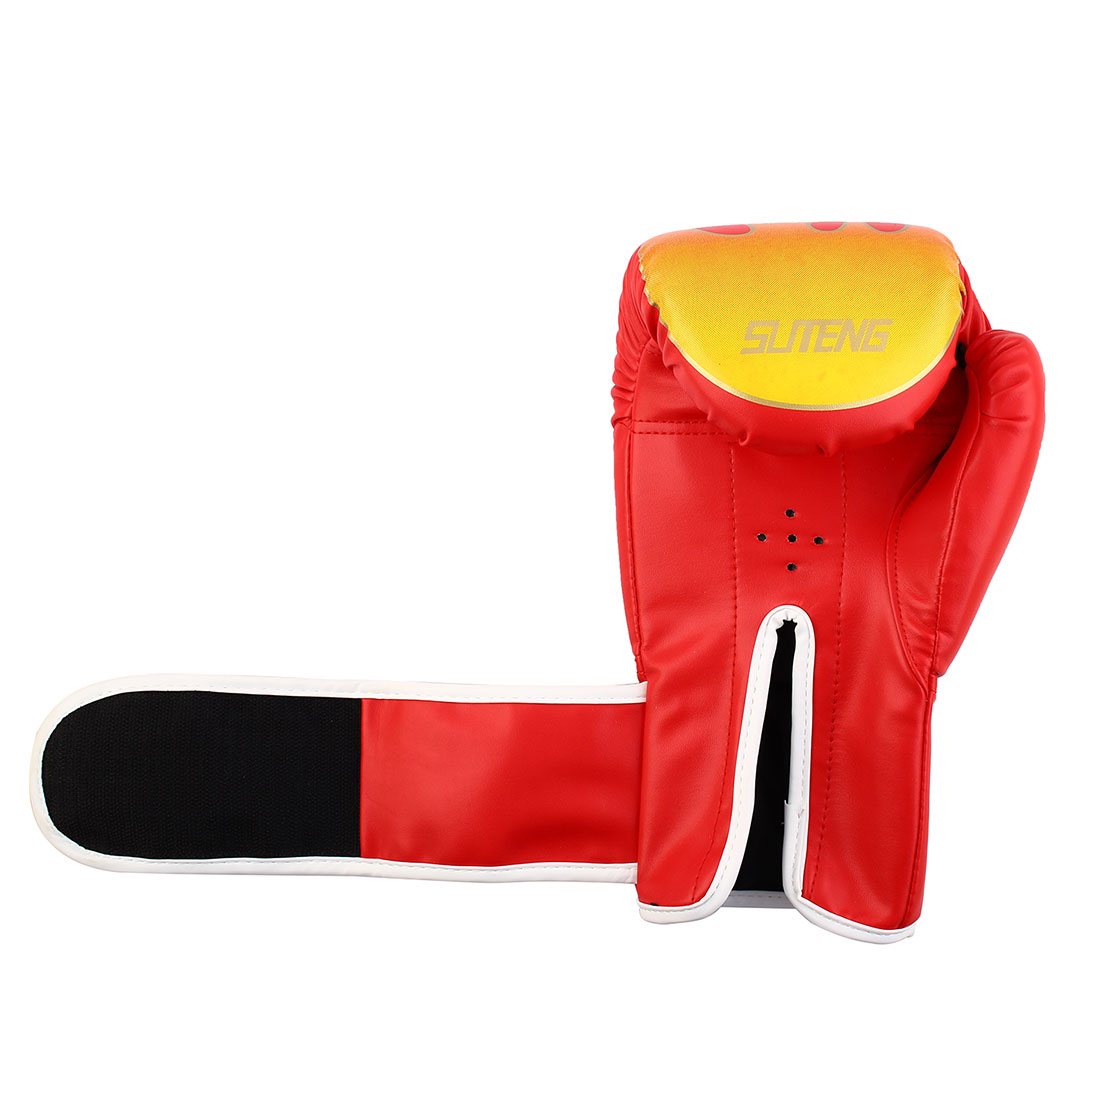 SUTENG Authorized Adult PU Fire Print Sparring Punching Bag Mitts Kickboxing Boxing Gloves Pair Red - image 2 de 3